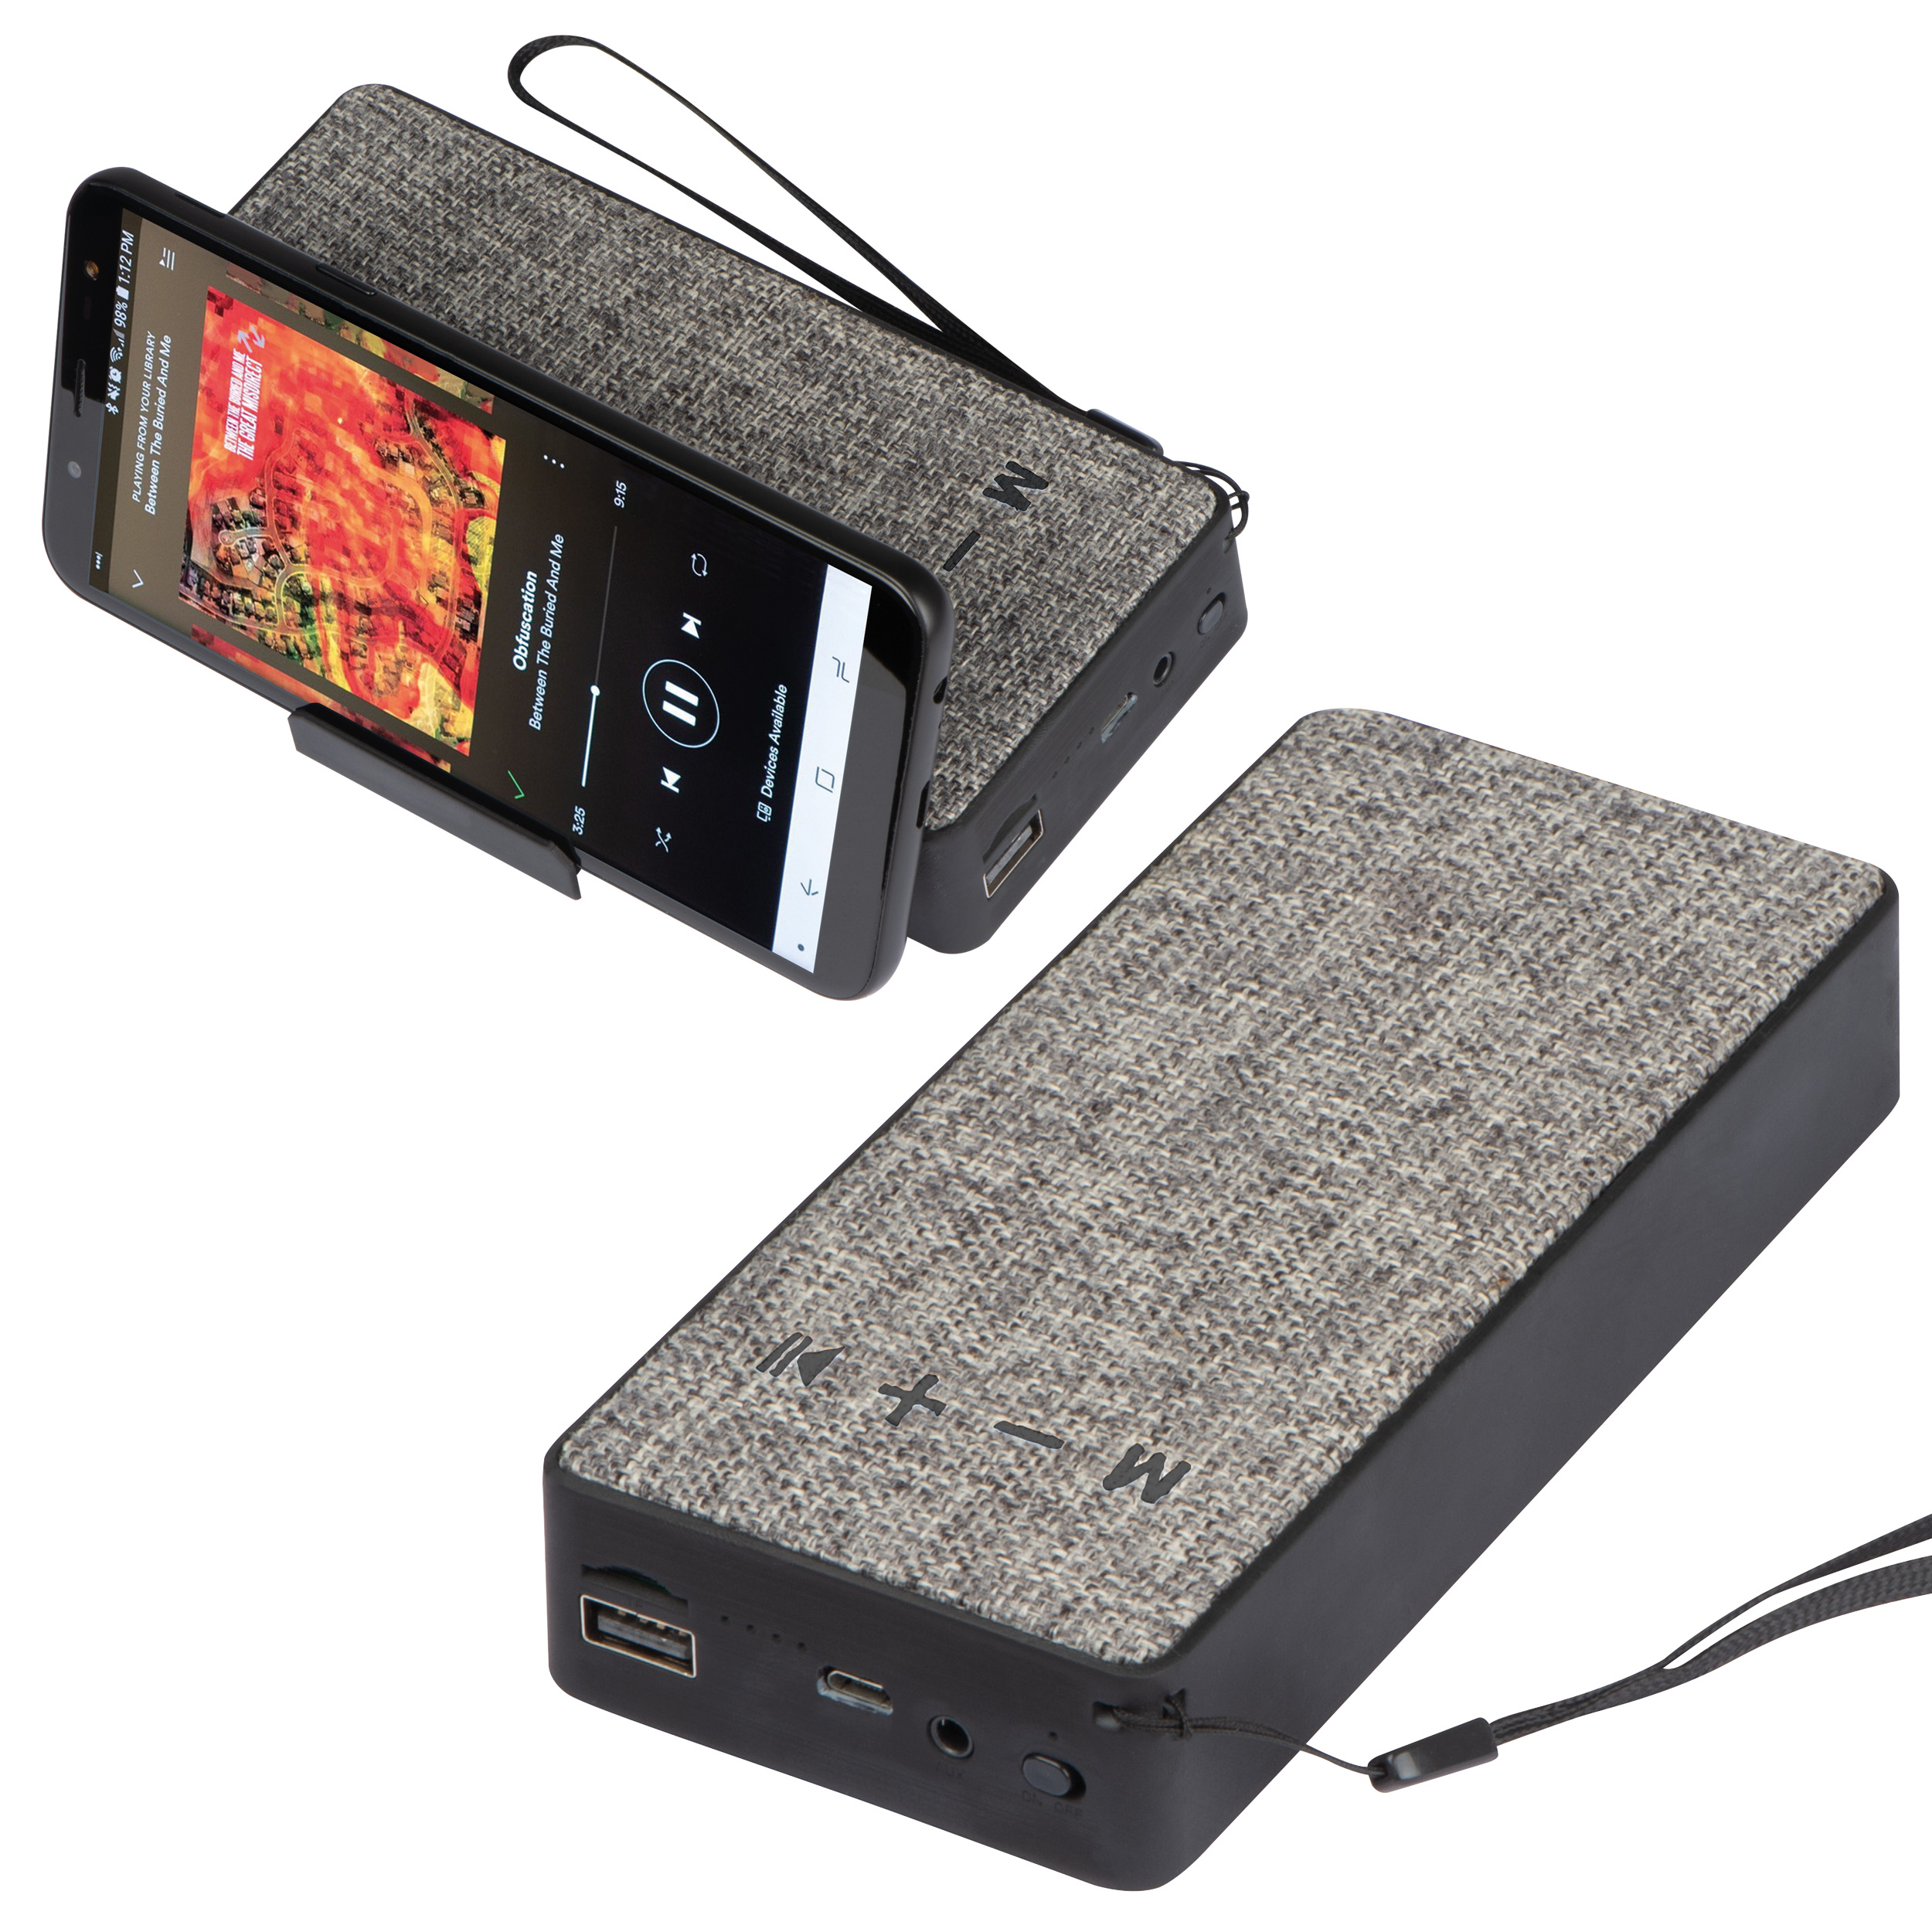 8.000 mAh power bank with speaker and phone holder